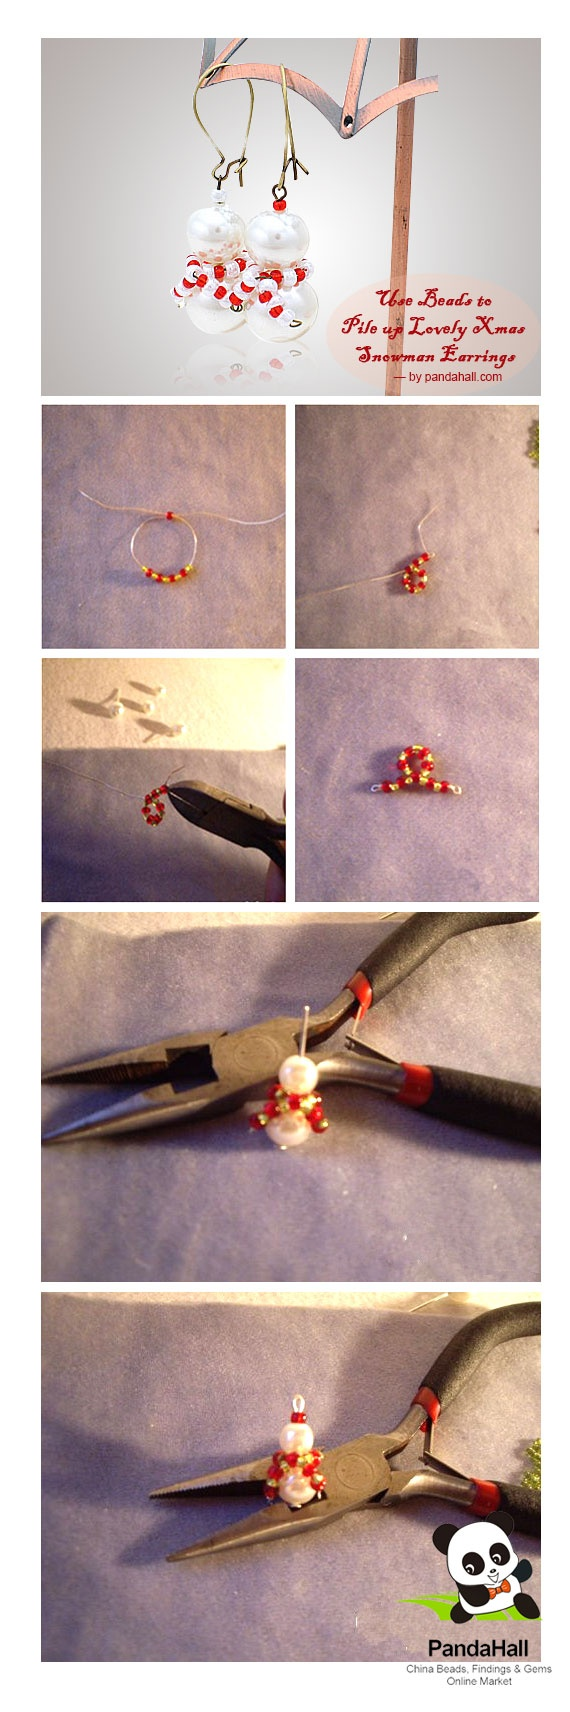 Use beads to pile up lovely Xmas snowman earrings